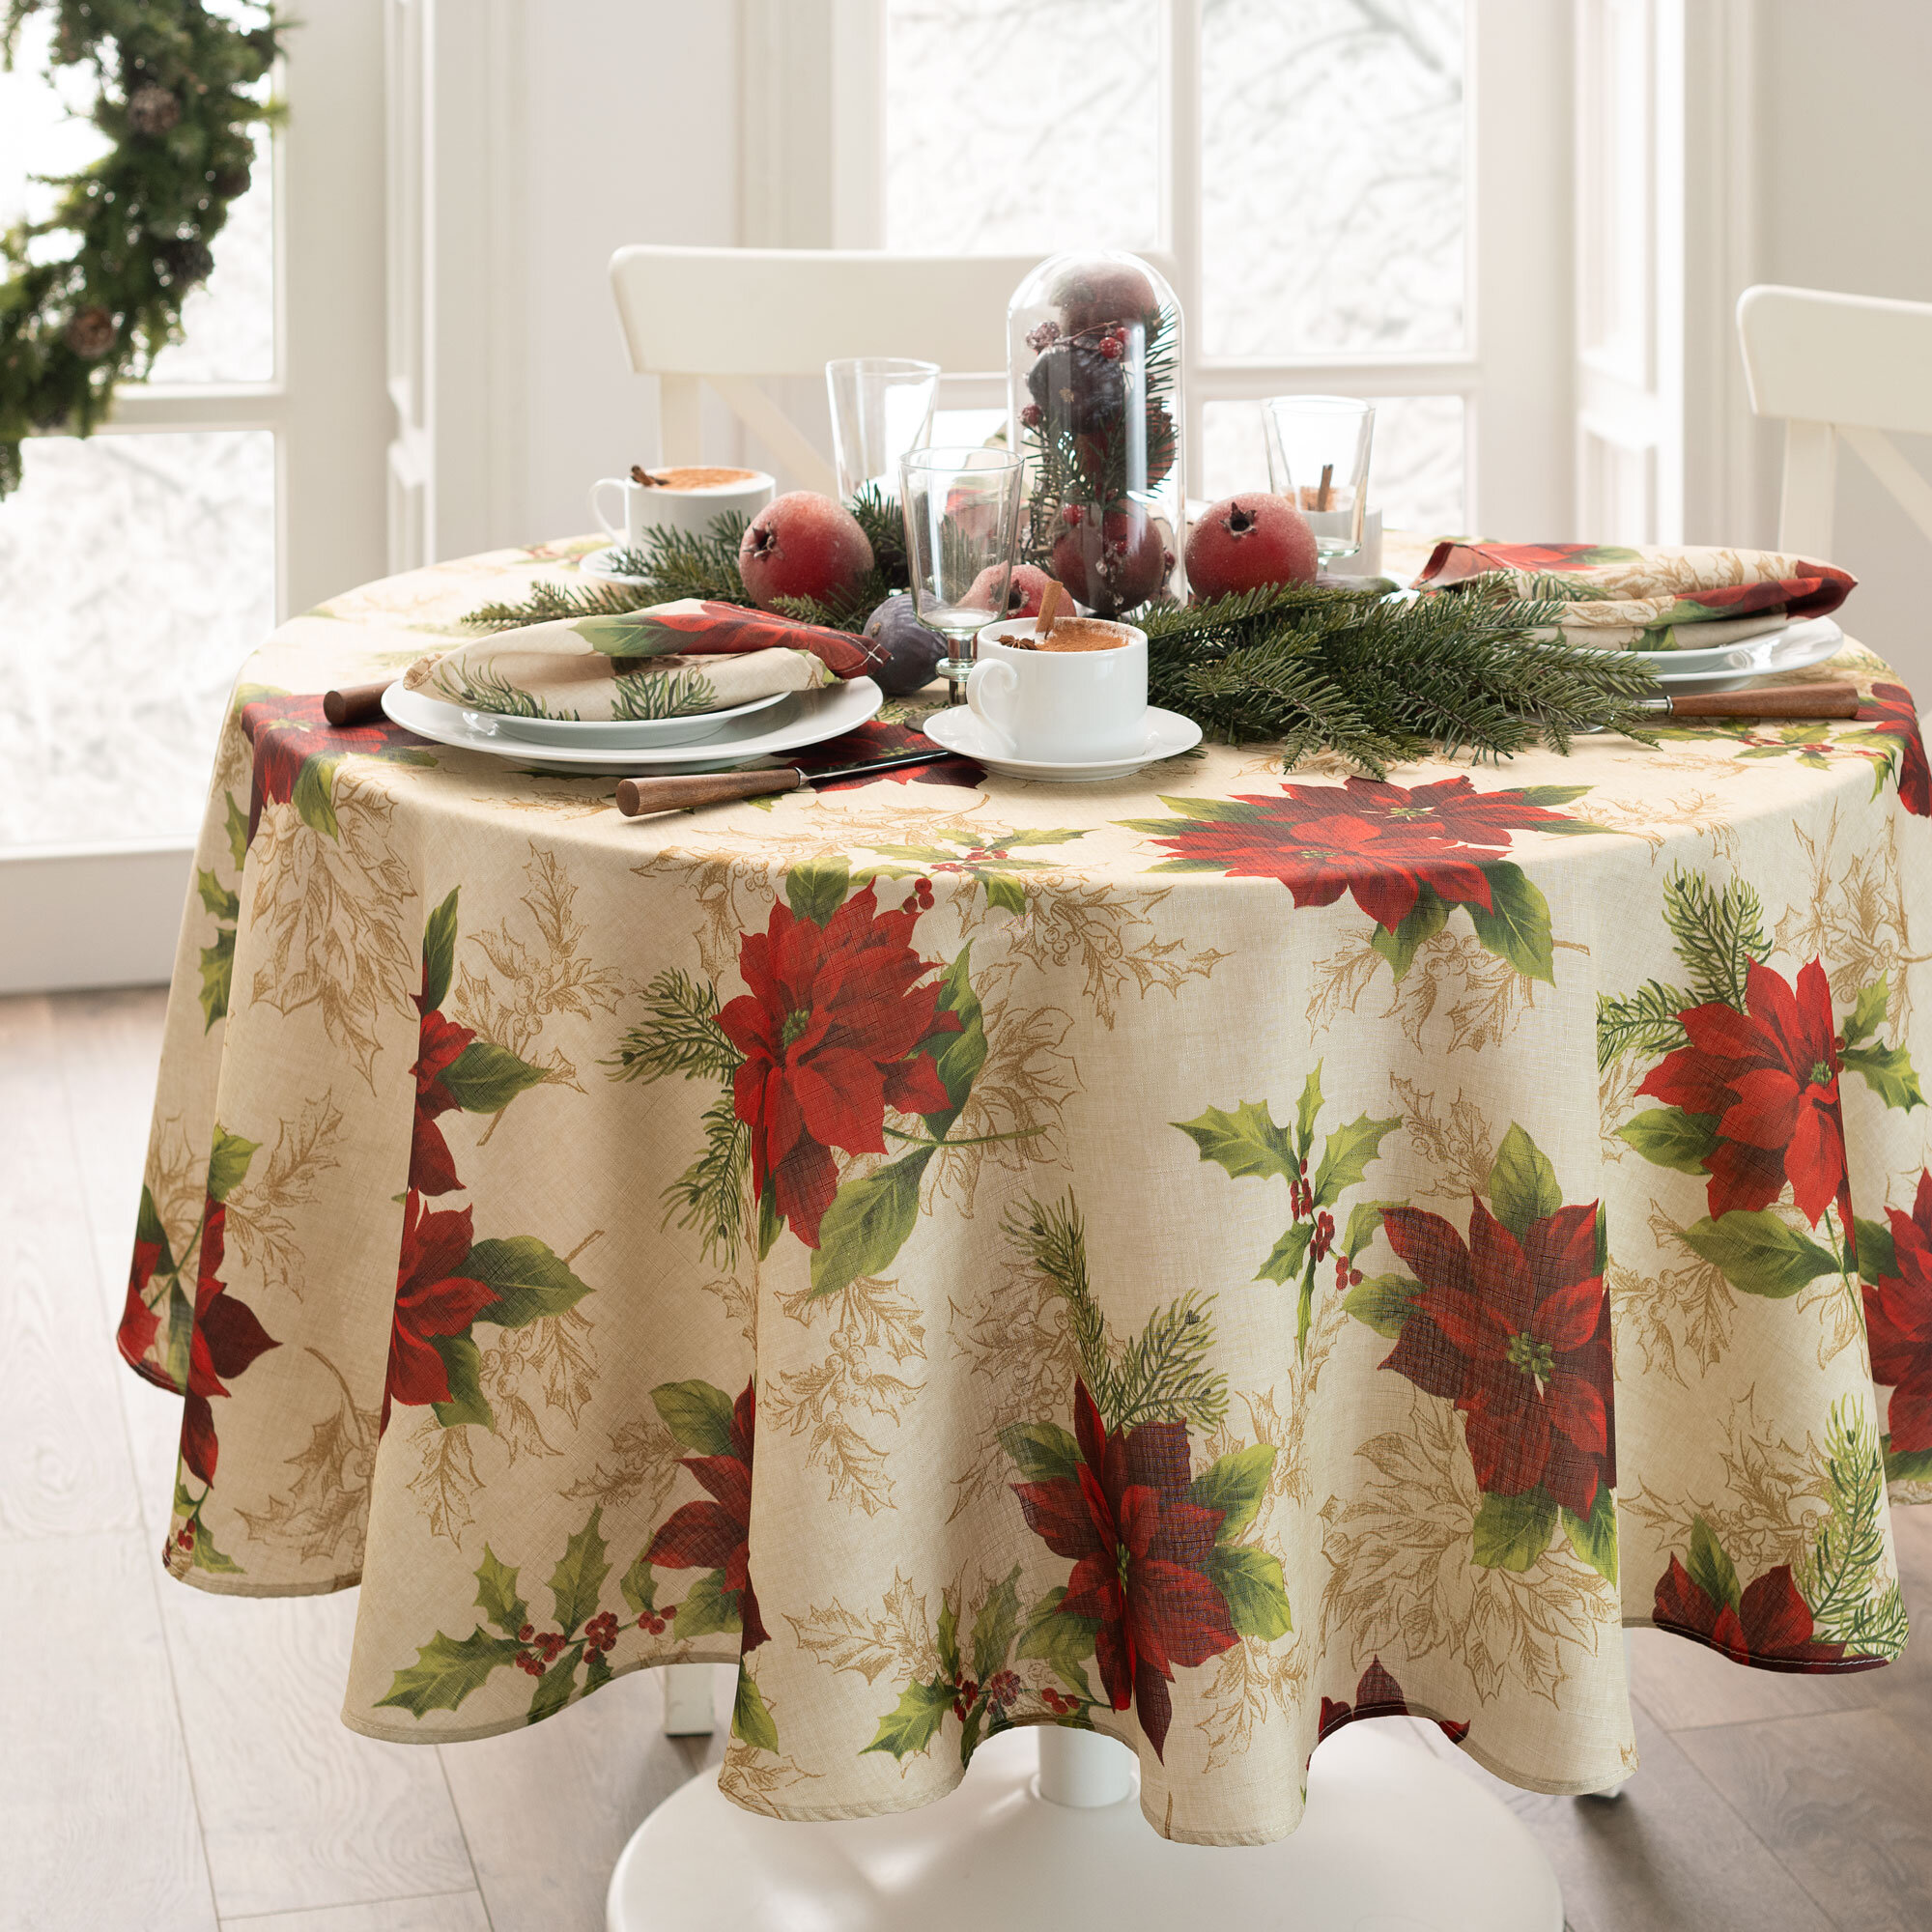 Round The Holiday Aisle Christmas Tablecloths Table Runners You Ll Love In 2021 Wayfair